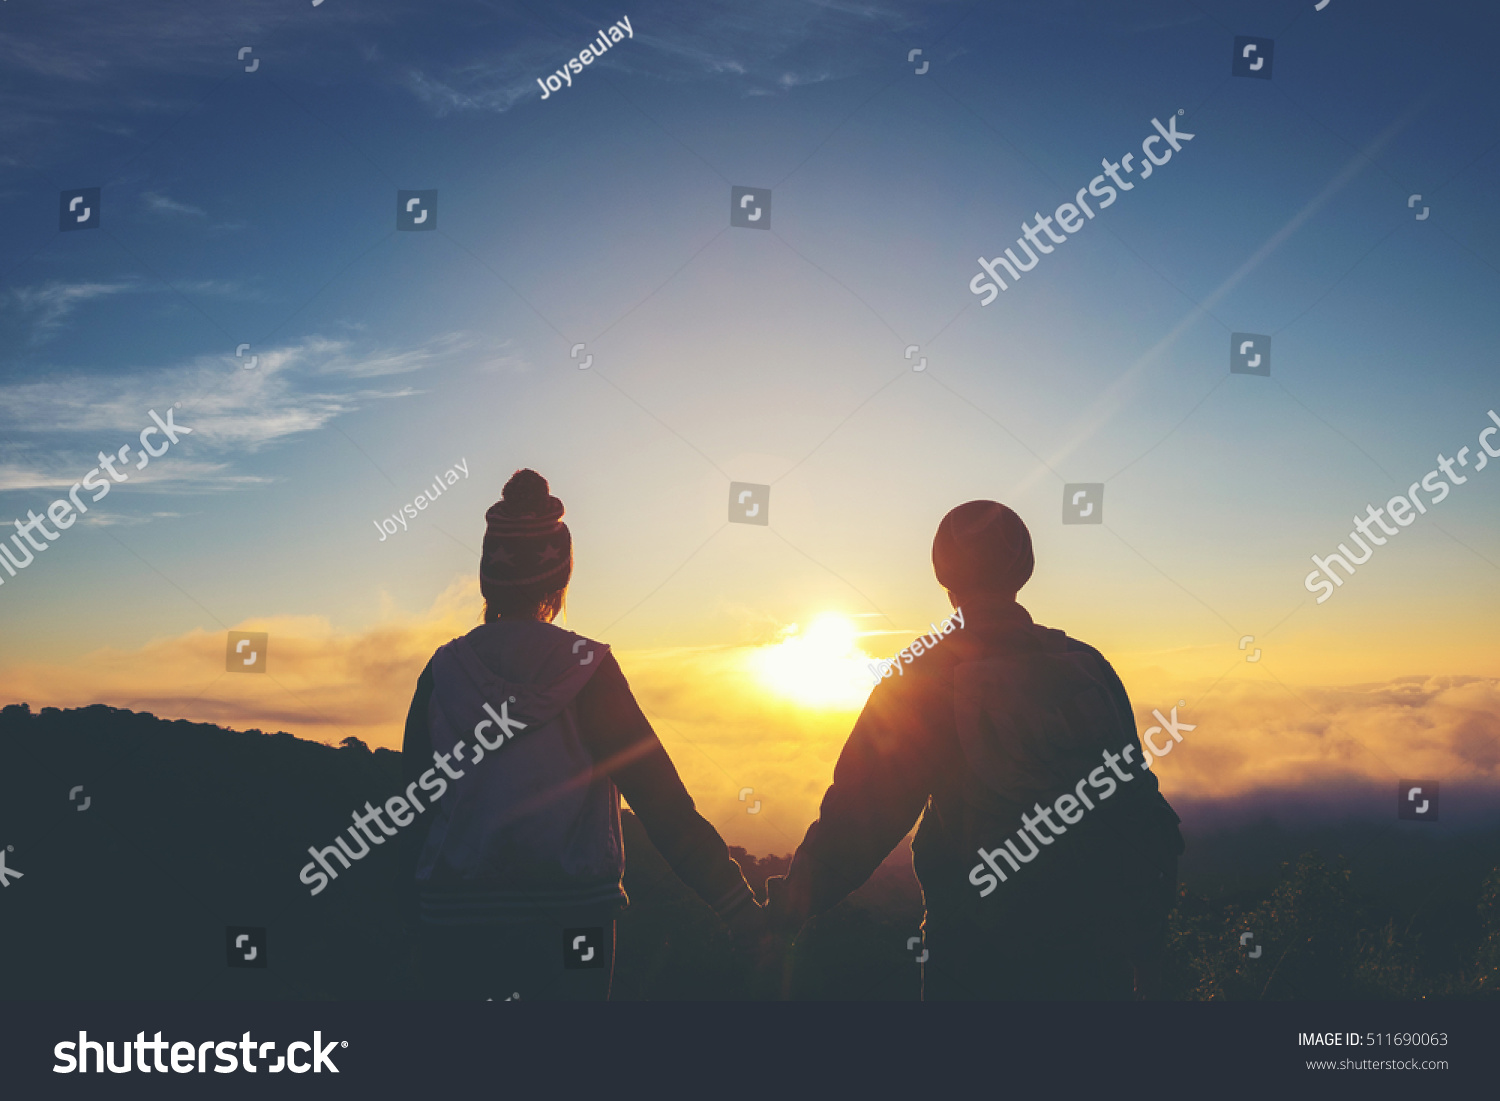 Silhouette Couple Holding Hands Sunset Stock Photo 511690063 ... for Couple Holding Hands Silhouette Sunset  183qdu